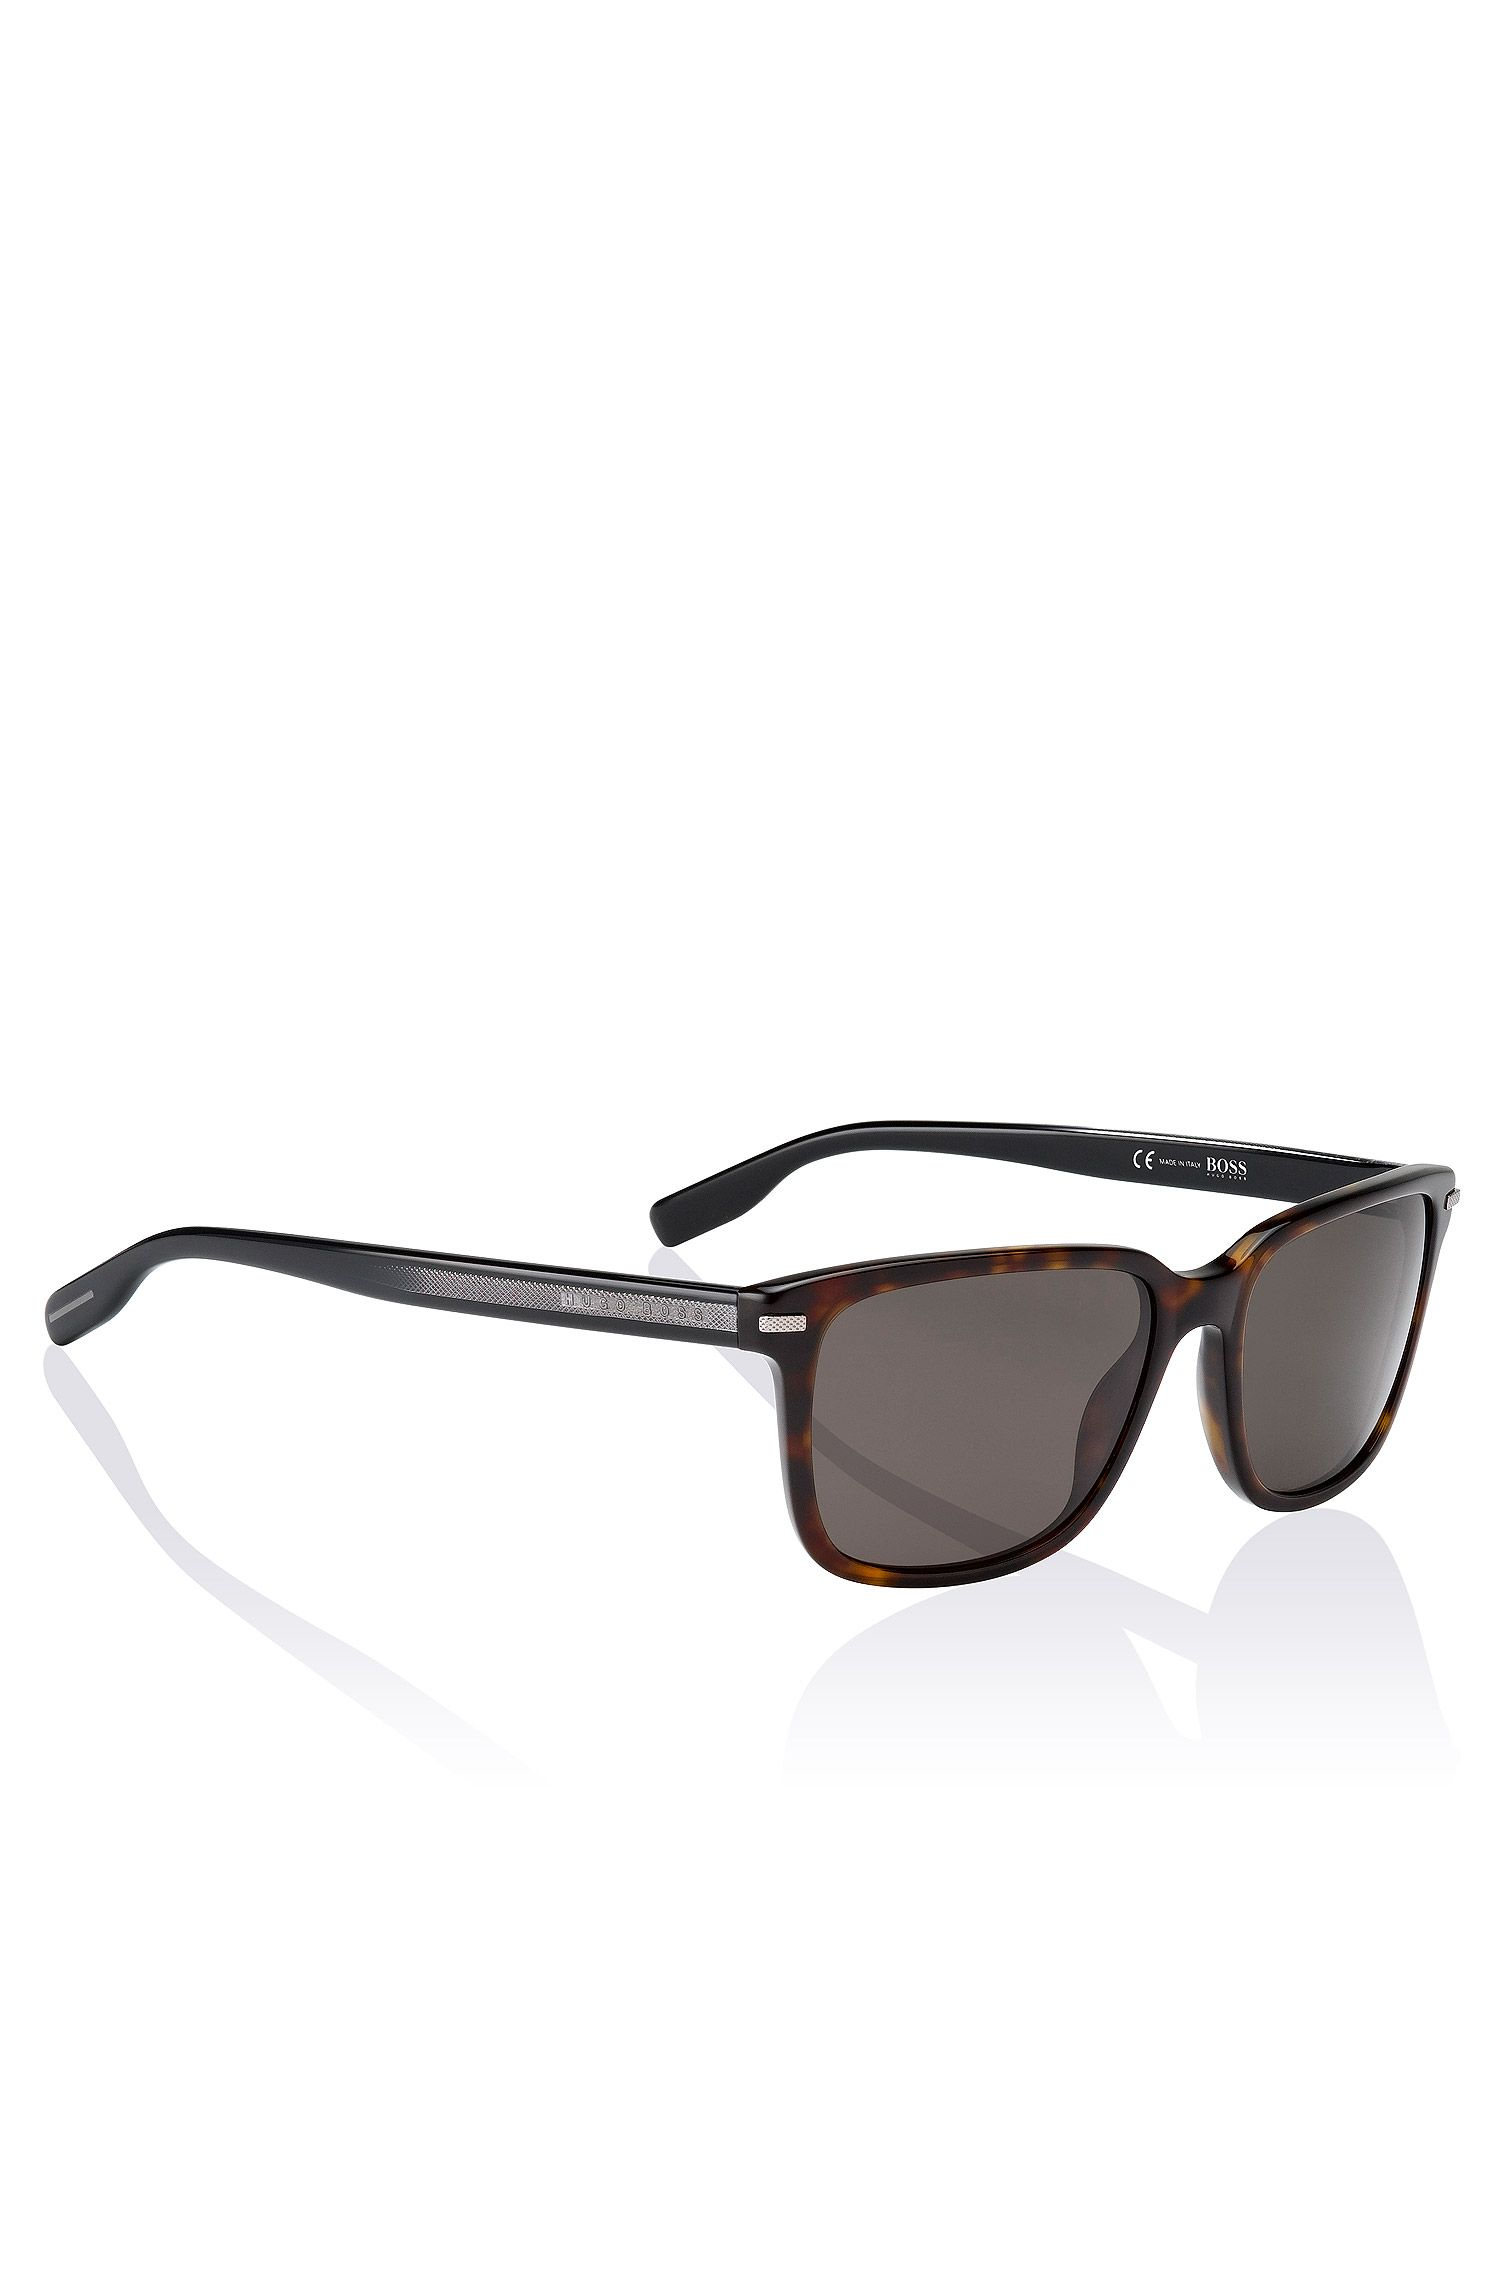 Sunglasses 'BOSS 0623/S'